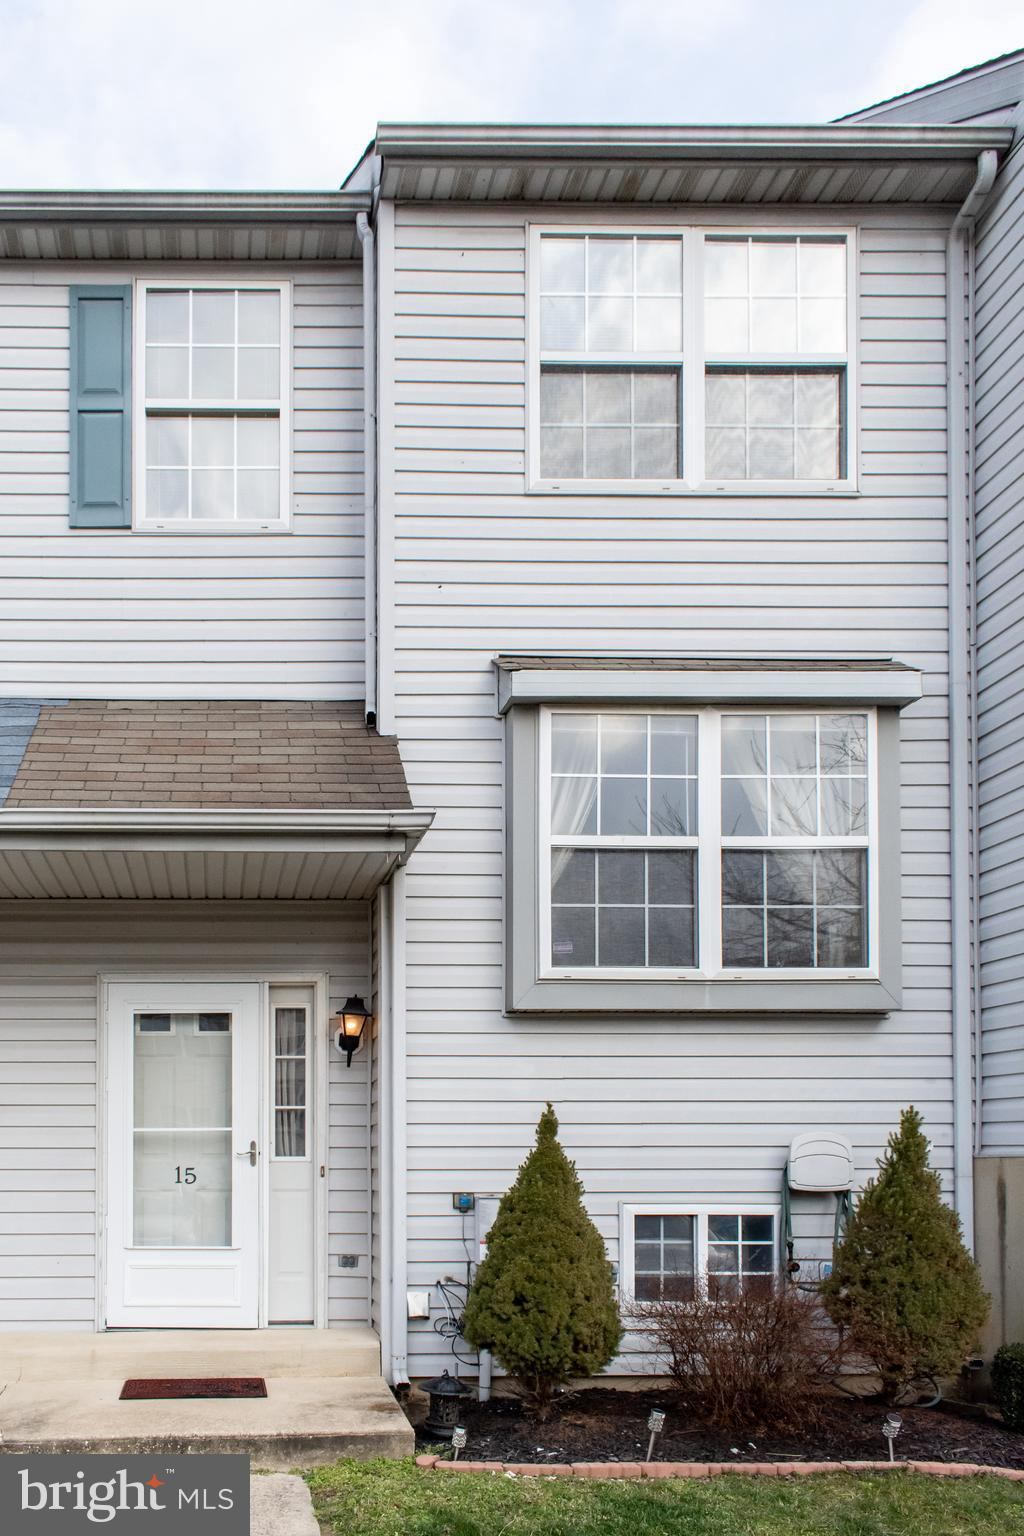 Great interior unit available in popular Greenlawn Phase II! This well maintained town-home is ready for its new owner. The main floor features an open concept with lots of natural light, eat-in kitchen, large living space, a half bath, and deck off the living room. On the upper floor you'll find 3 bedrooms, one being the generous sized master with walk-in closet, and full bath. Living room on the lower level with full walk-out egress along with spacious utility room with laundry area and plenty of storage. Other amenities include a fenced-in back yard(shared), newer flooring, and ceiling fans throughout. Seller is offering a 2000 dollar flooring allowance. Don't wait! Make your appointment to see this home today!